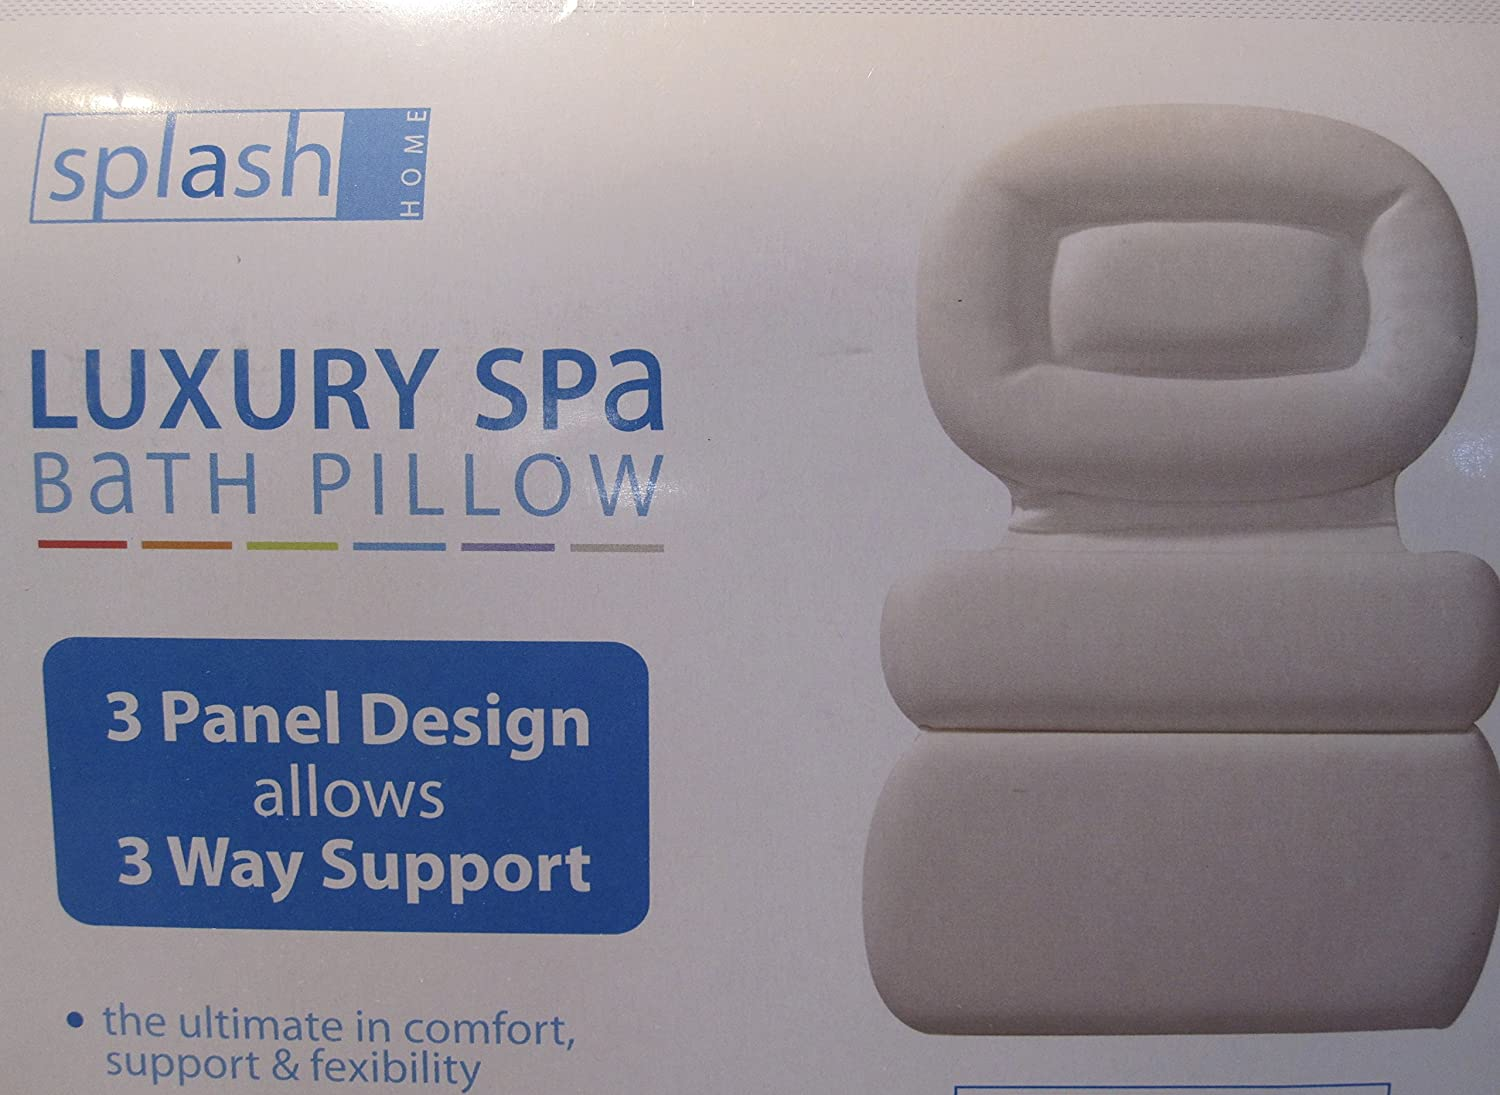 Luxury Spa Bath Pillow Full Size 3 Panel 21 L x 15 W x 1.5 D